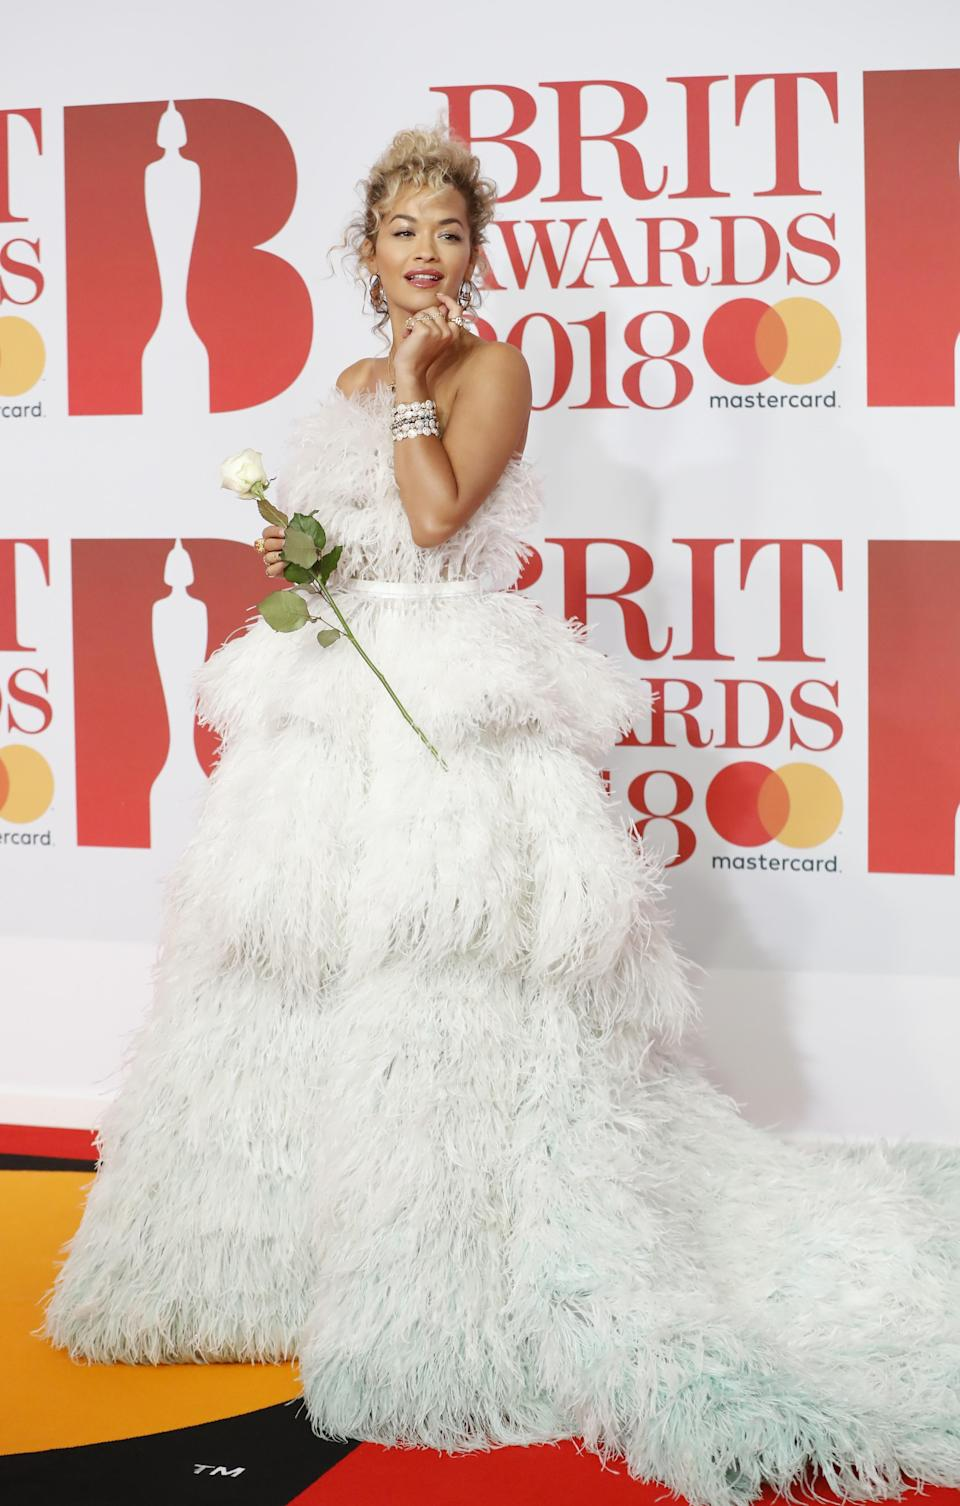 Rita Ora holding a white rose at the Brit Awards to show support for the Time's Up movement [Photo: Getty]